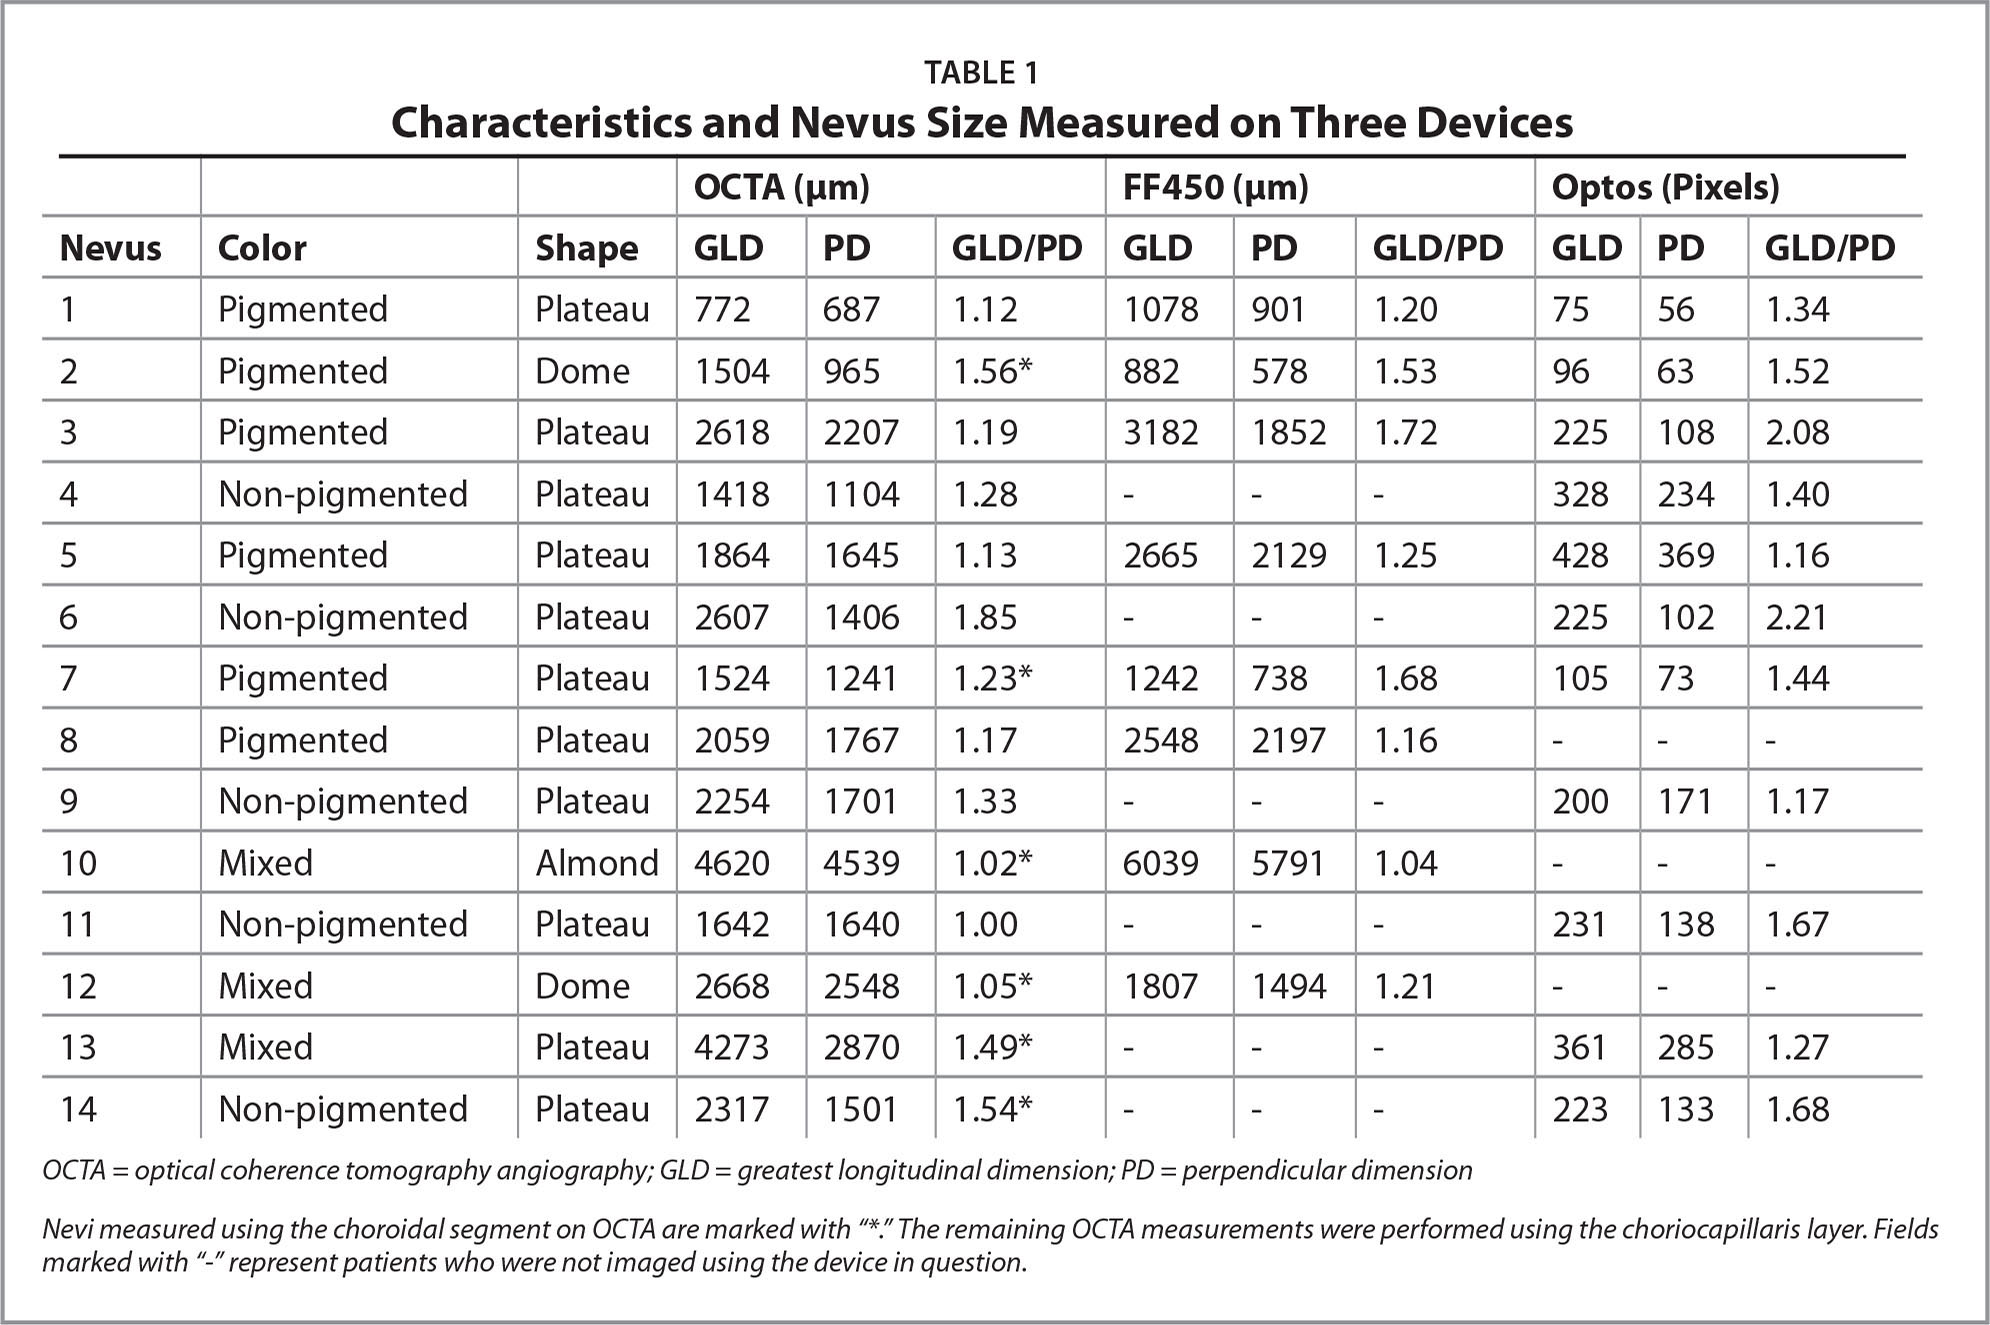 Characteristics and Nevus Size Measured on Three Devices